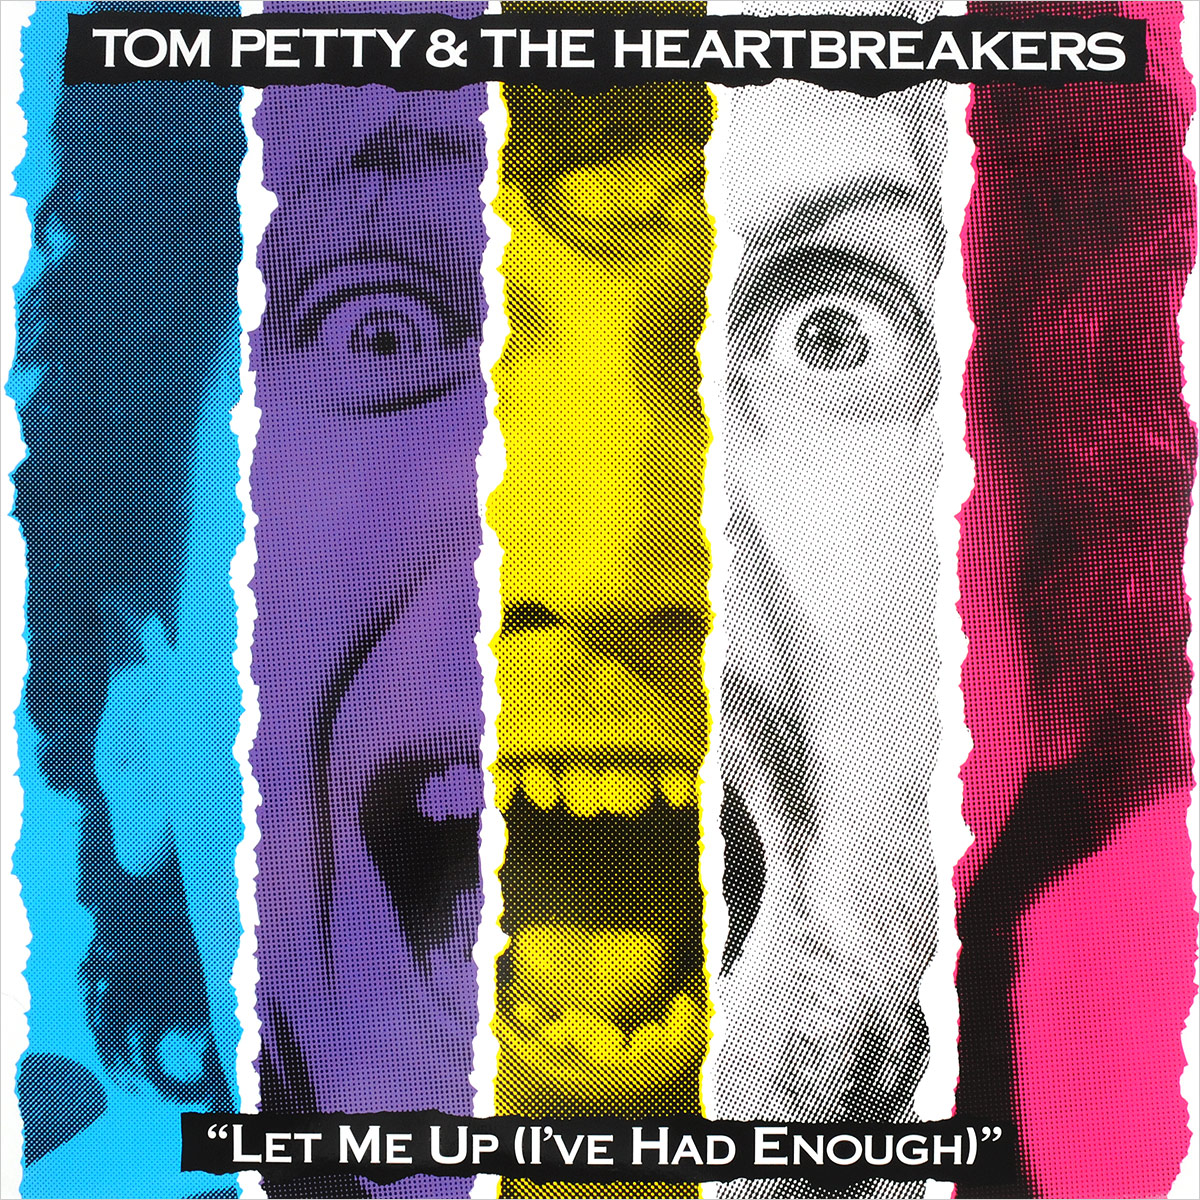 Том Петти,The Heartbreakers Tom Petty And The Heartbreakers. Let Me Up (I've Had Enough) (LP) jd mcpherson jd mcpherson let the good times roll